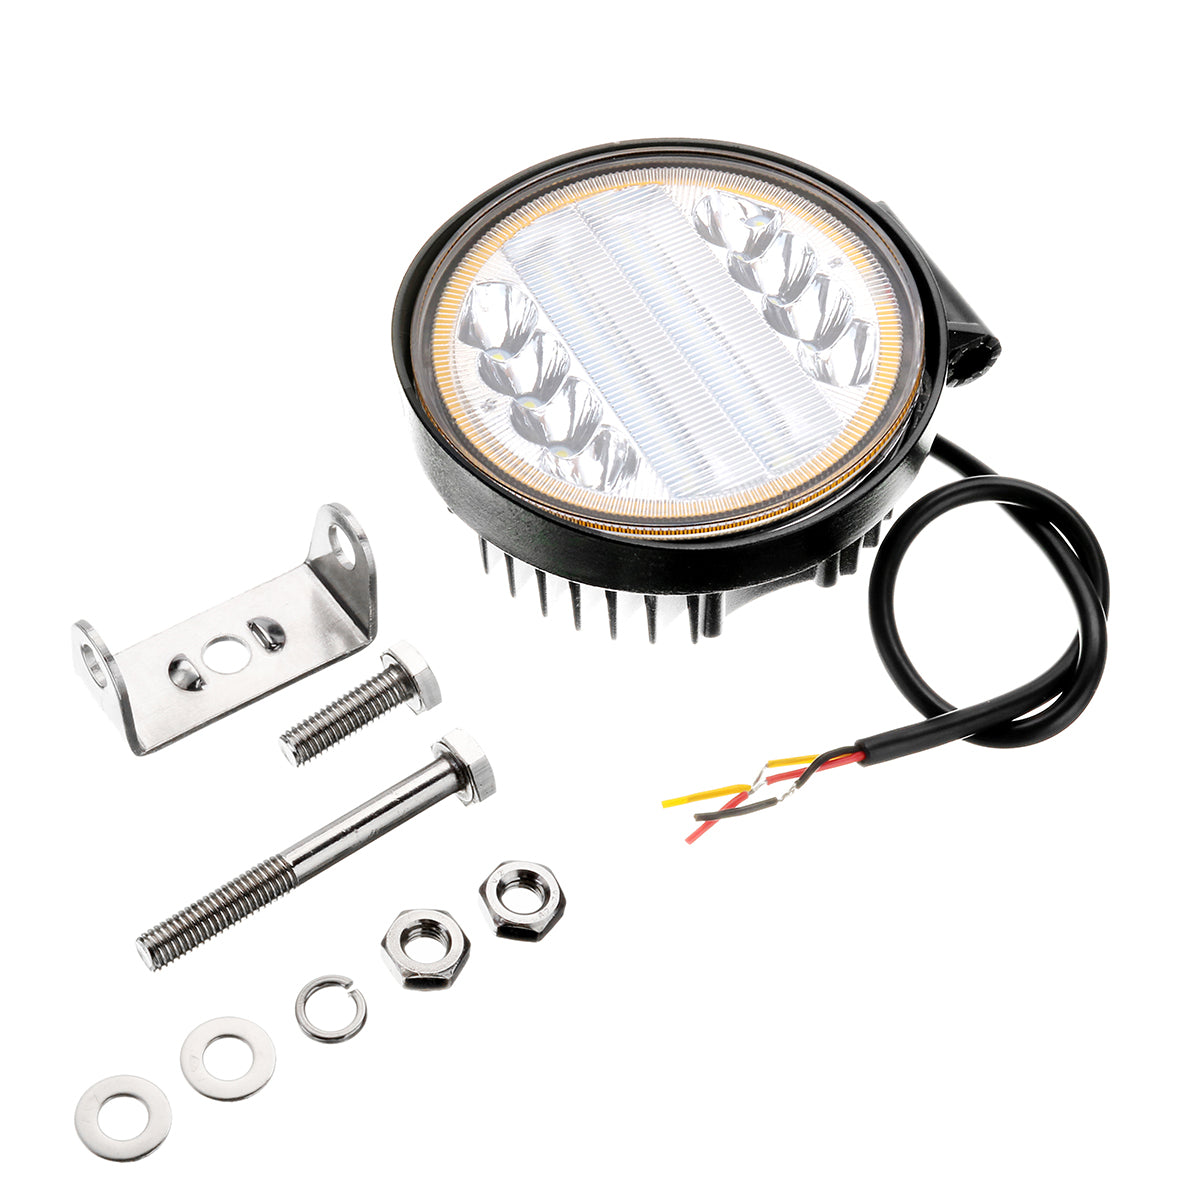 1pcs 30W White 6000K 2100LM 20 LED Car Work Light with Yellow Halo Ring for Off-road SUV Trucks